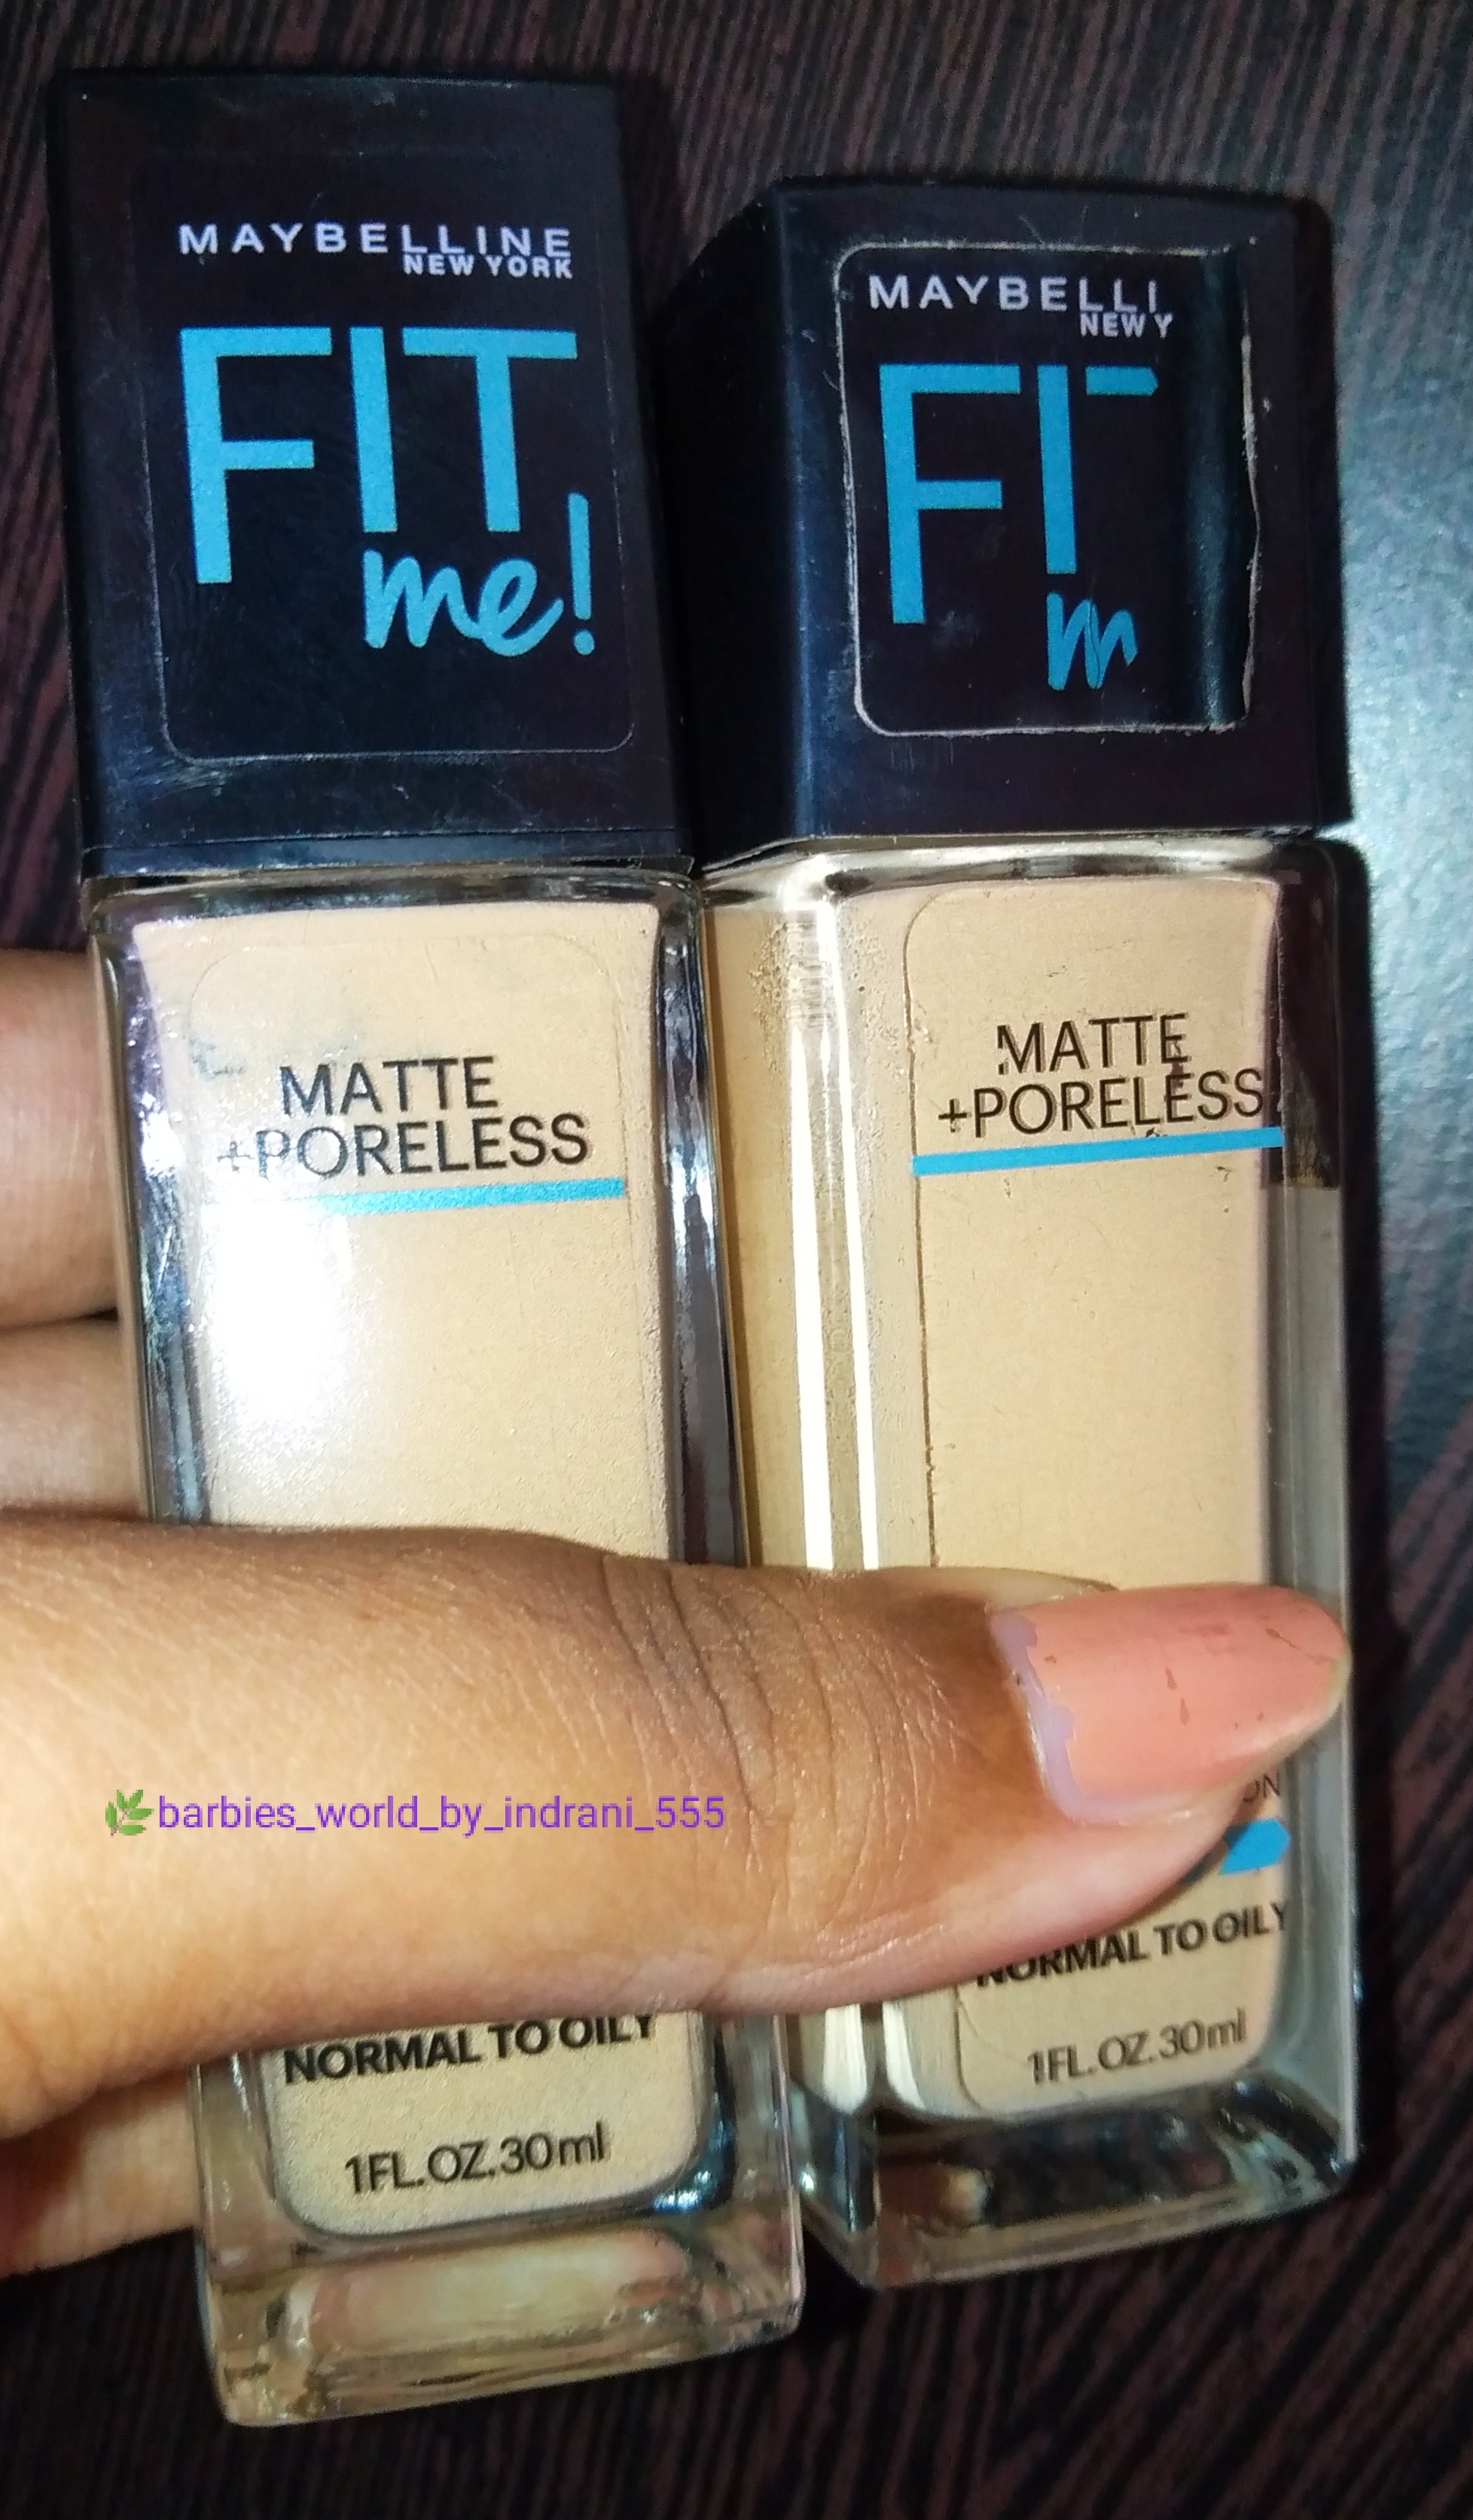 Maybelline New York‎ Fit Me Matte + Poreless Foundation -Best Matte Foundation-By indranireviews